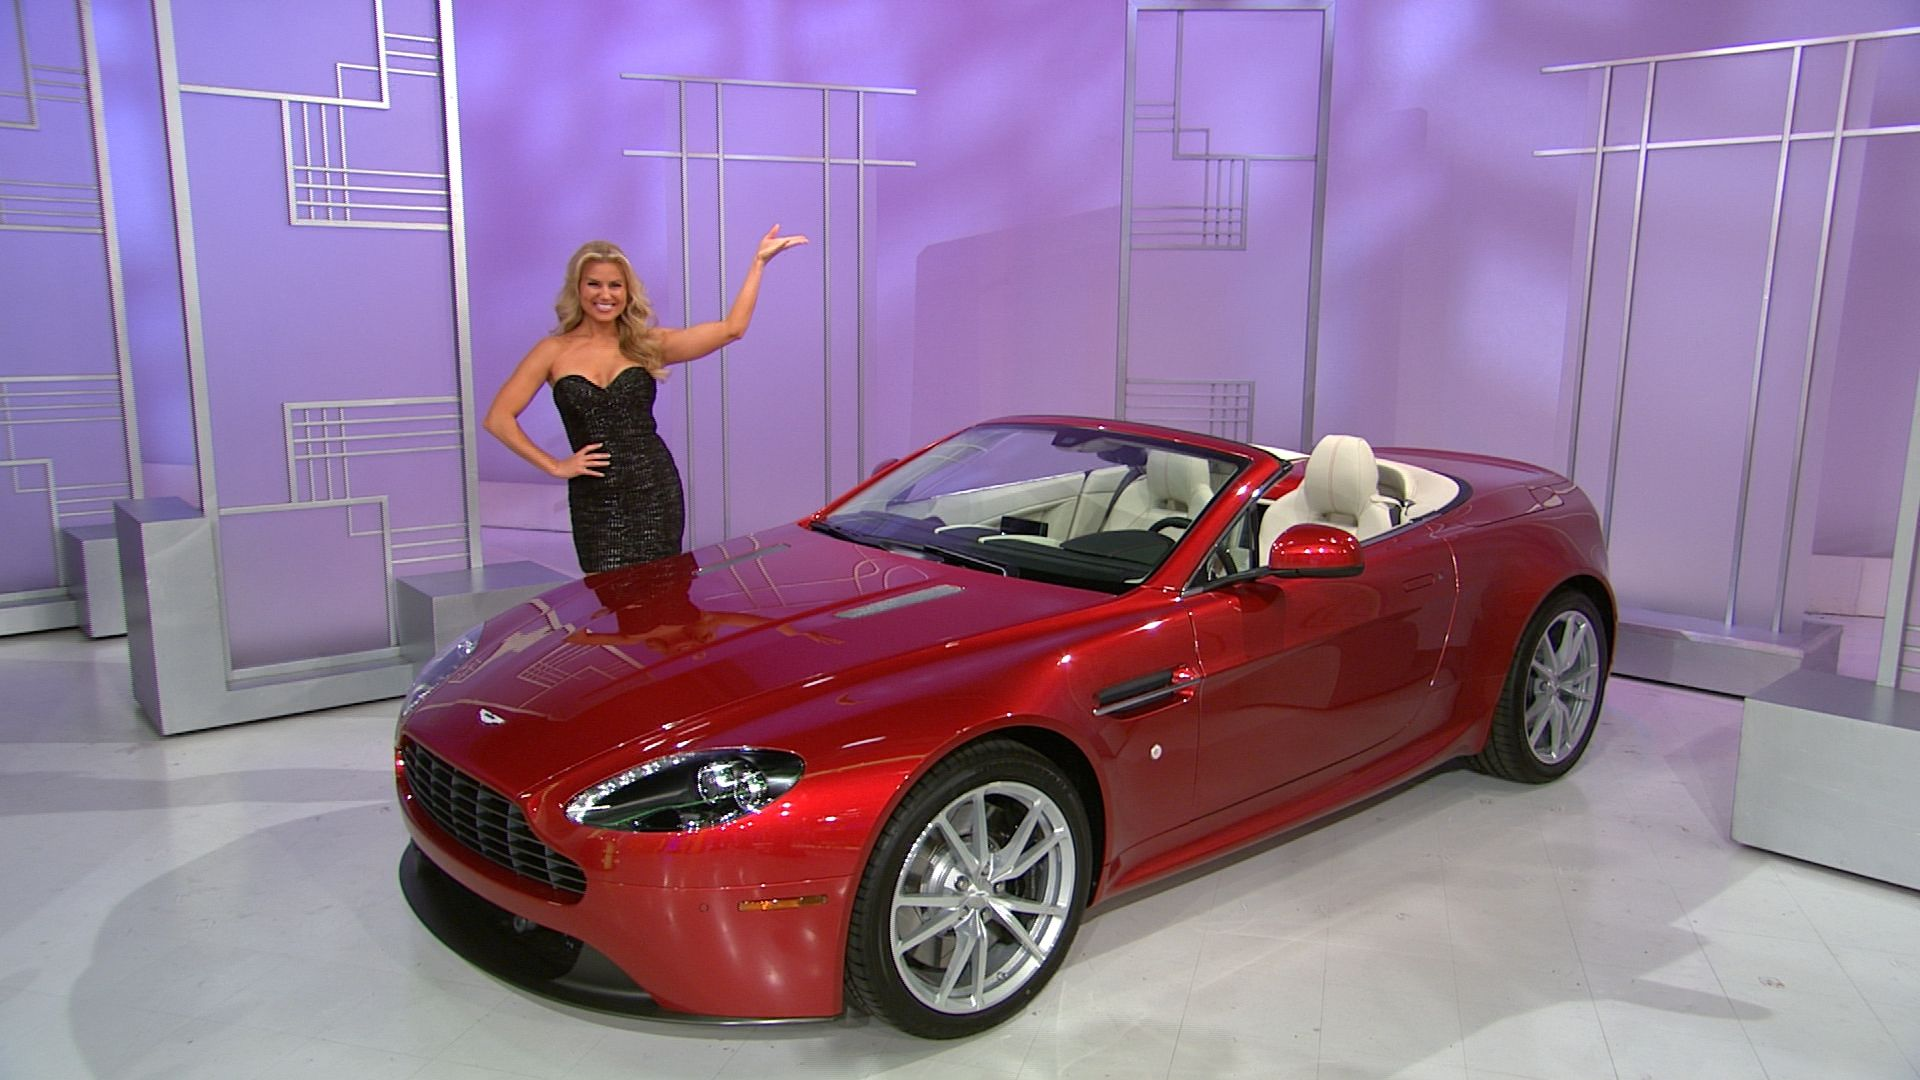 It S The Aston Martin V8 Vantage Roadster Featuring A 4 7 Liter Engine A 7 Speed Sport Shift 2 Automated Manual Aston Martin V8 Rear Wheel Drive Convertible